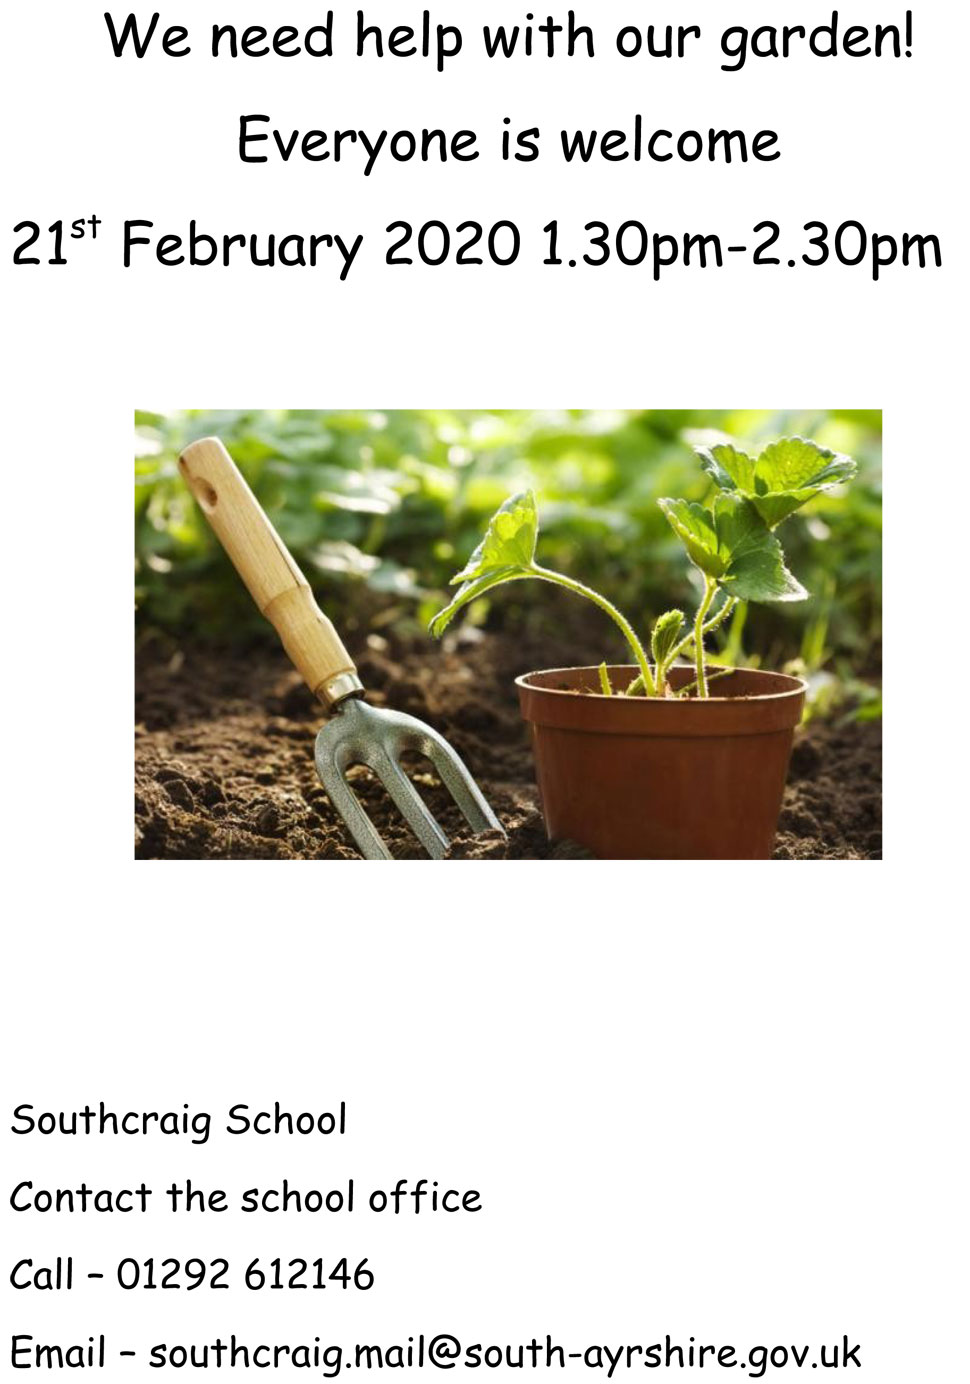 Southcraig School need help with their garden